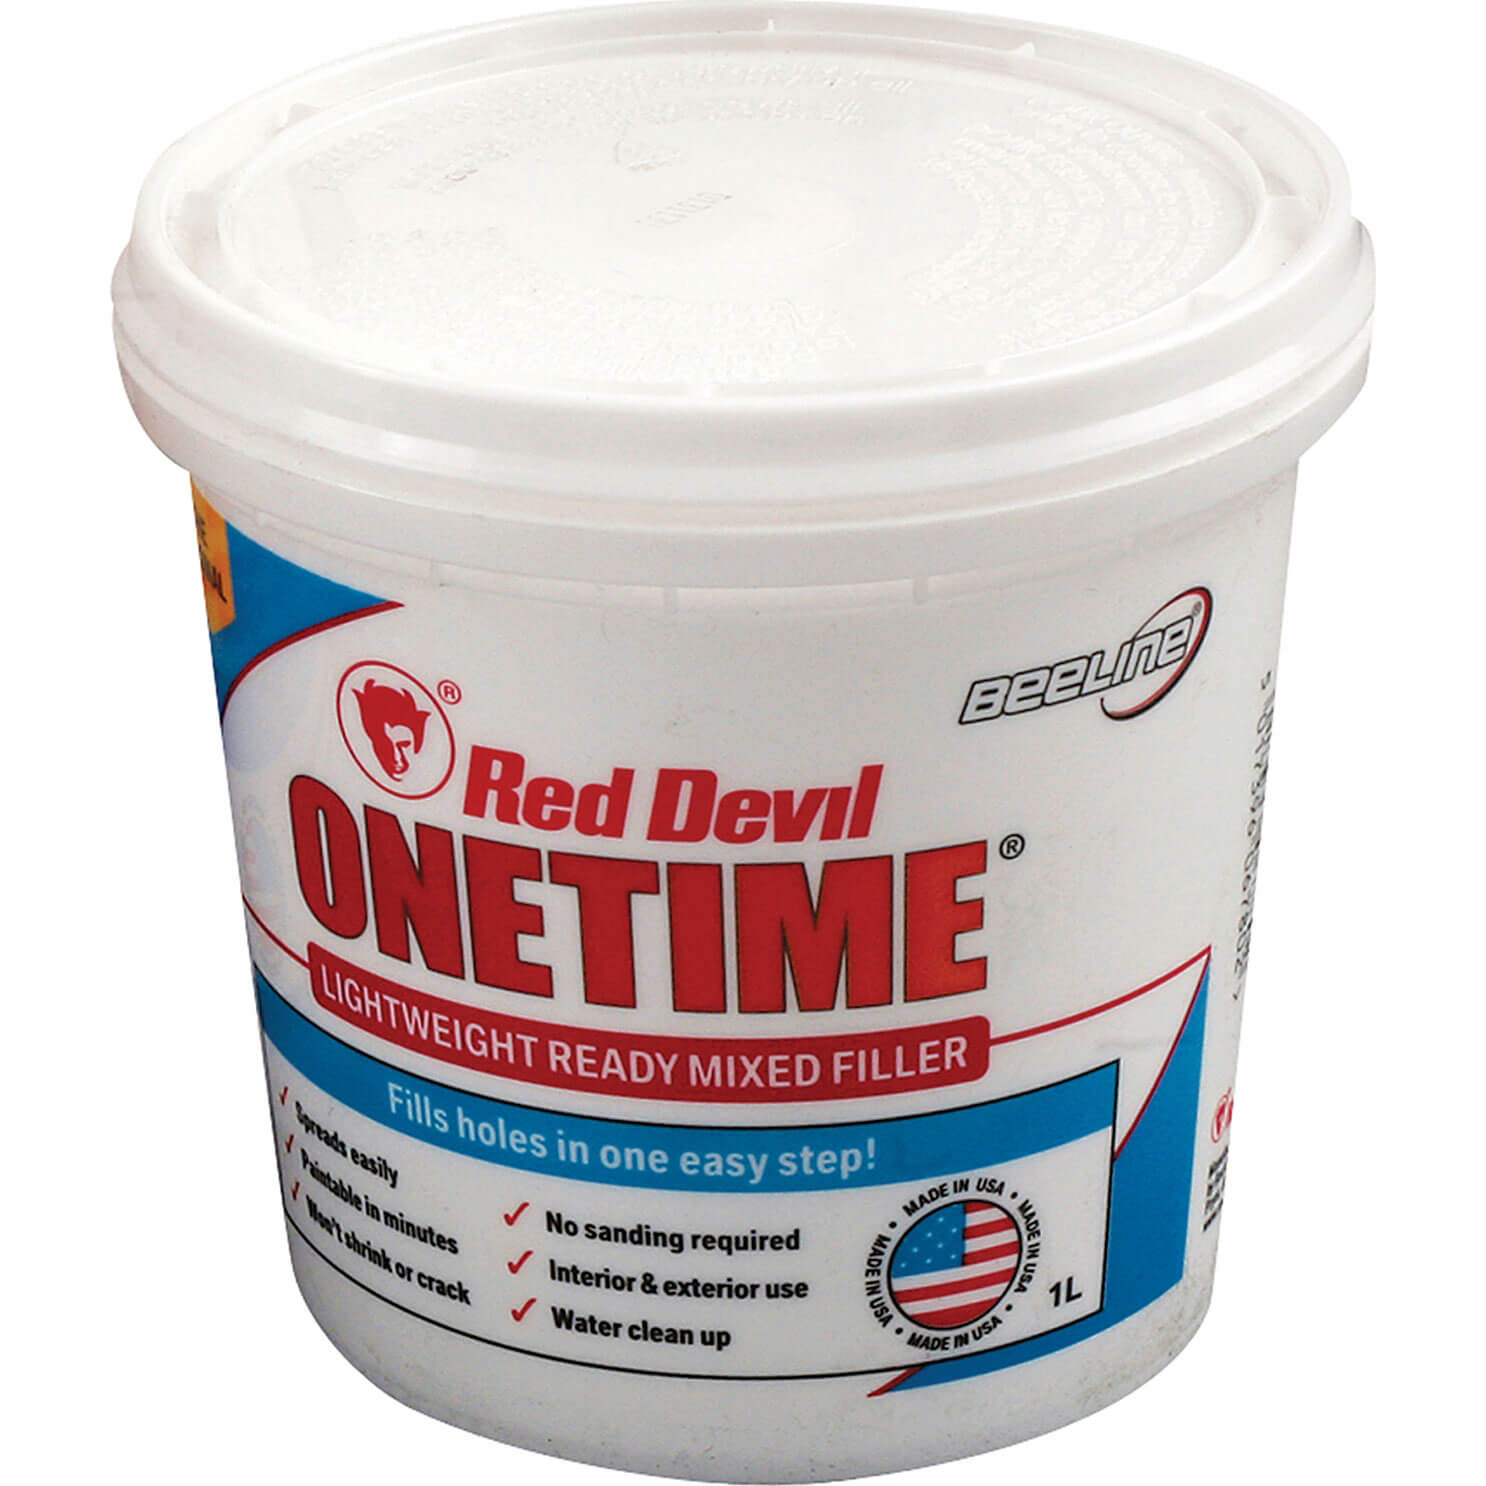 Image of Red Devil Onetime Ready Mixed Filler 1l